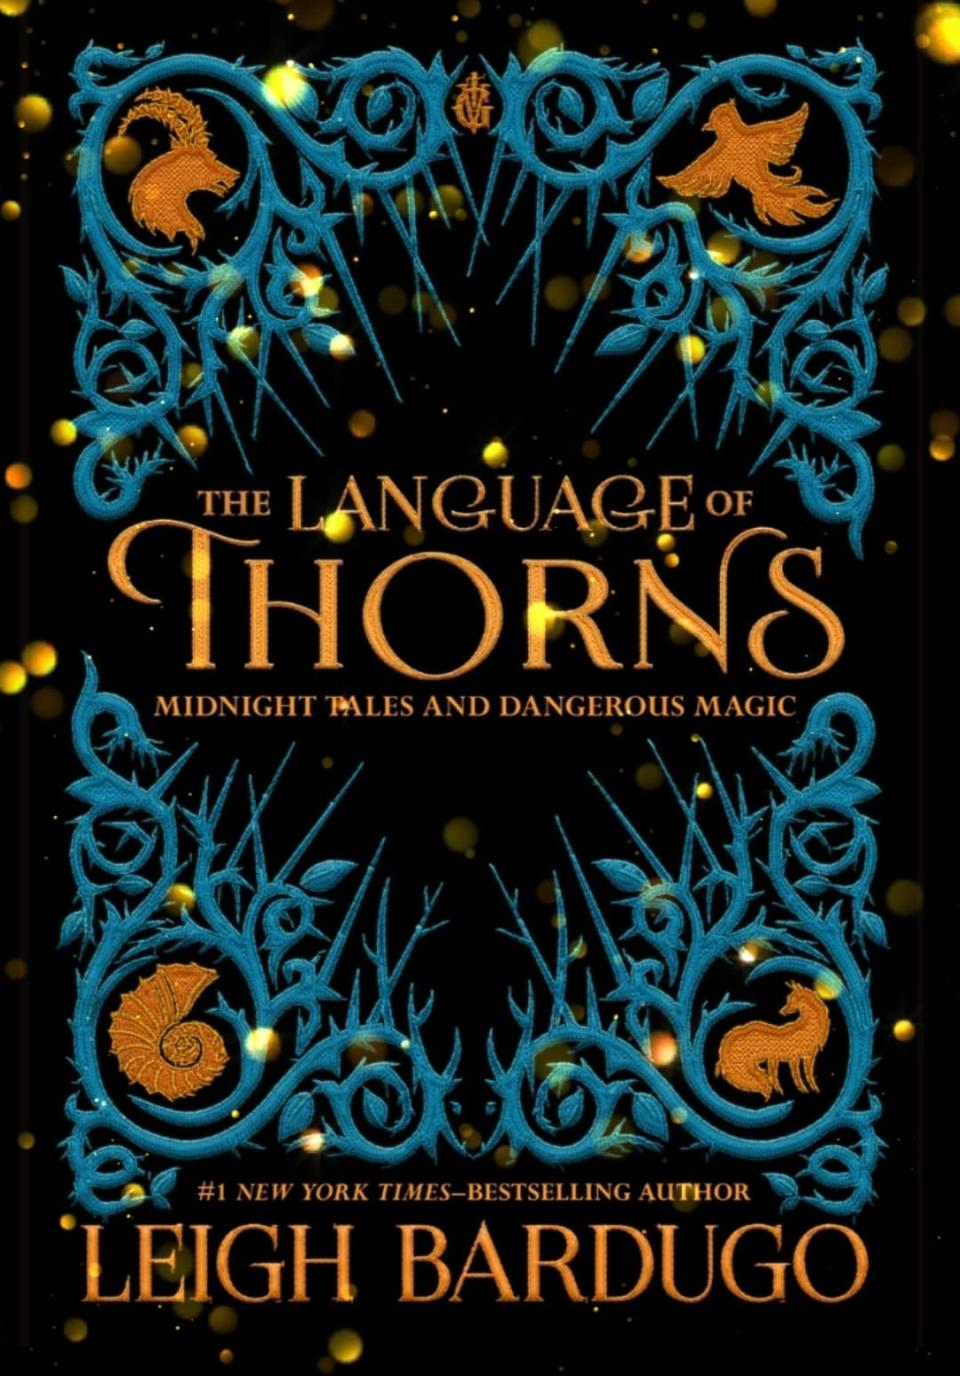 The Language of Thorns: Midnight Tales and Dangerous Magic Hardcover by Leigh Bardugo. Image via Sarah Rohoman.